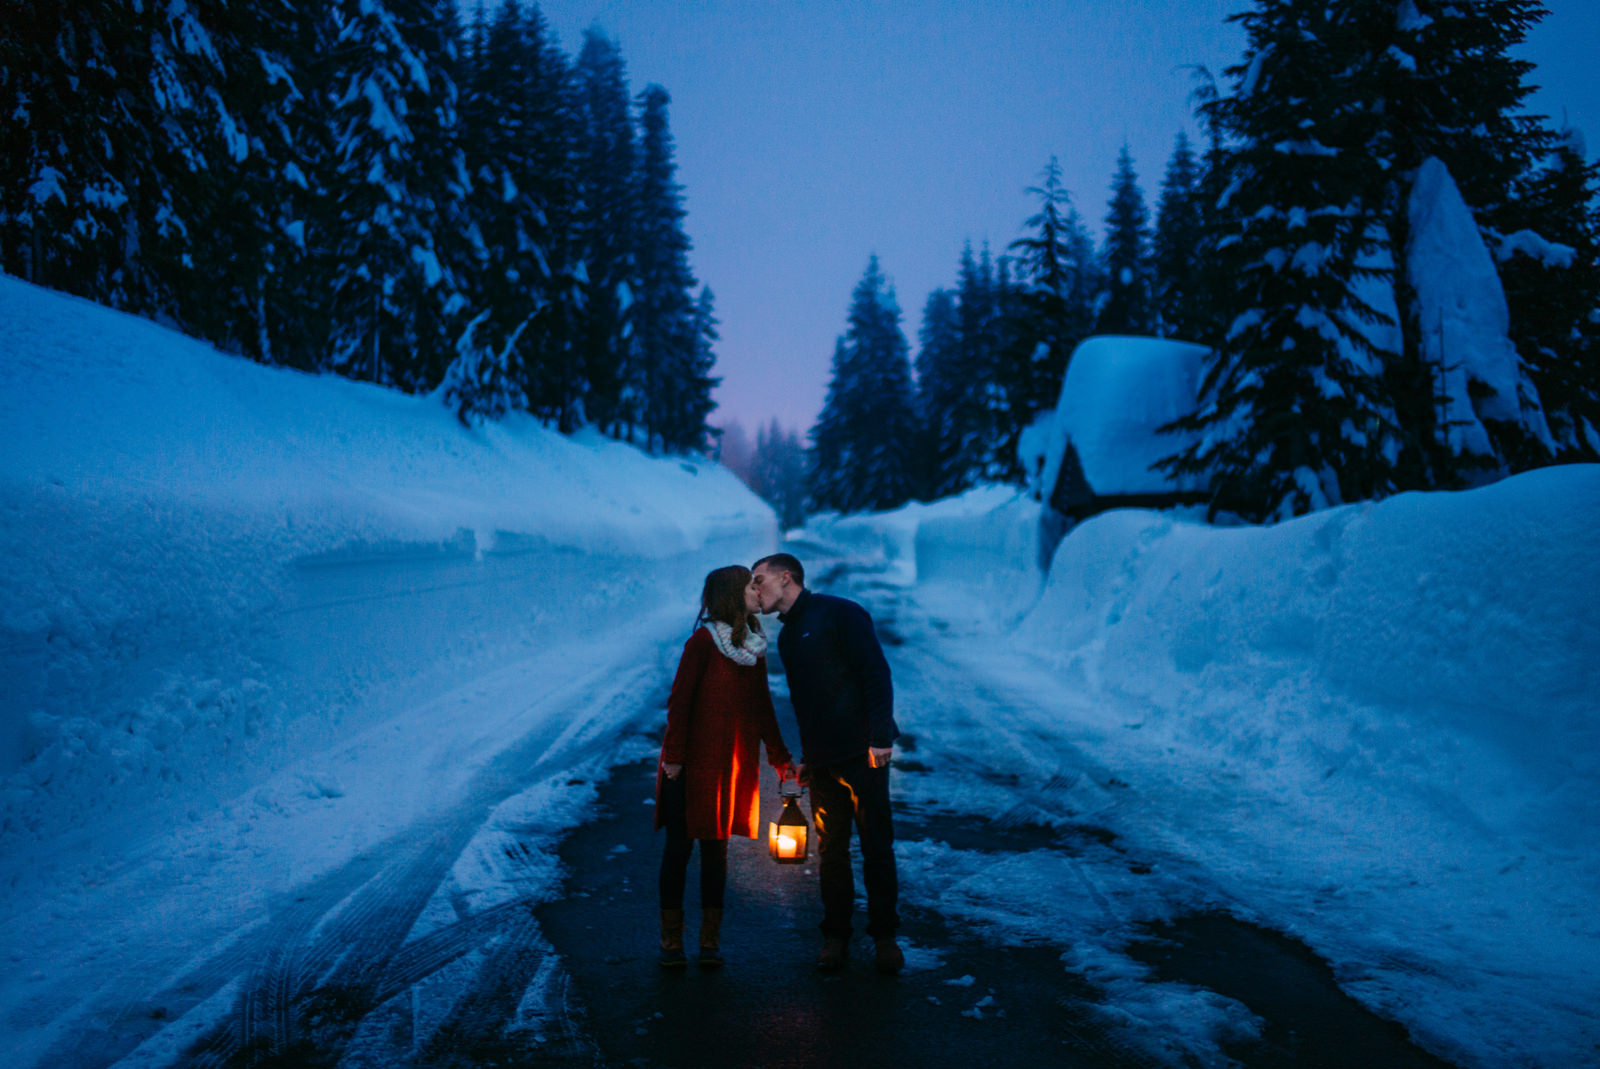 257-moody-evening-photo-with-couple-holding-lantern-in-the-snow-by-ryan-flynn-photography.jpg